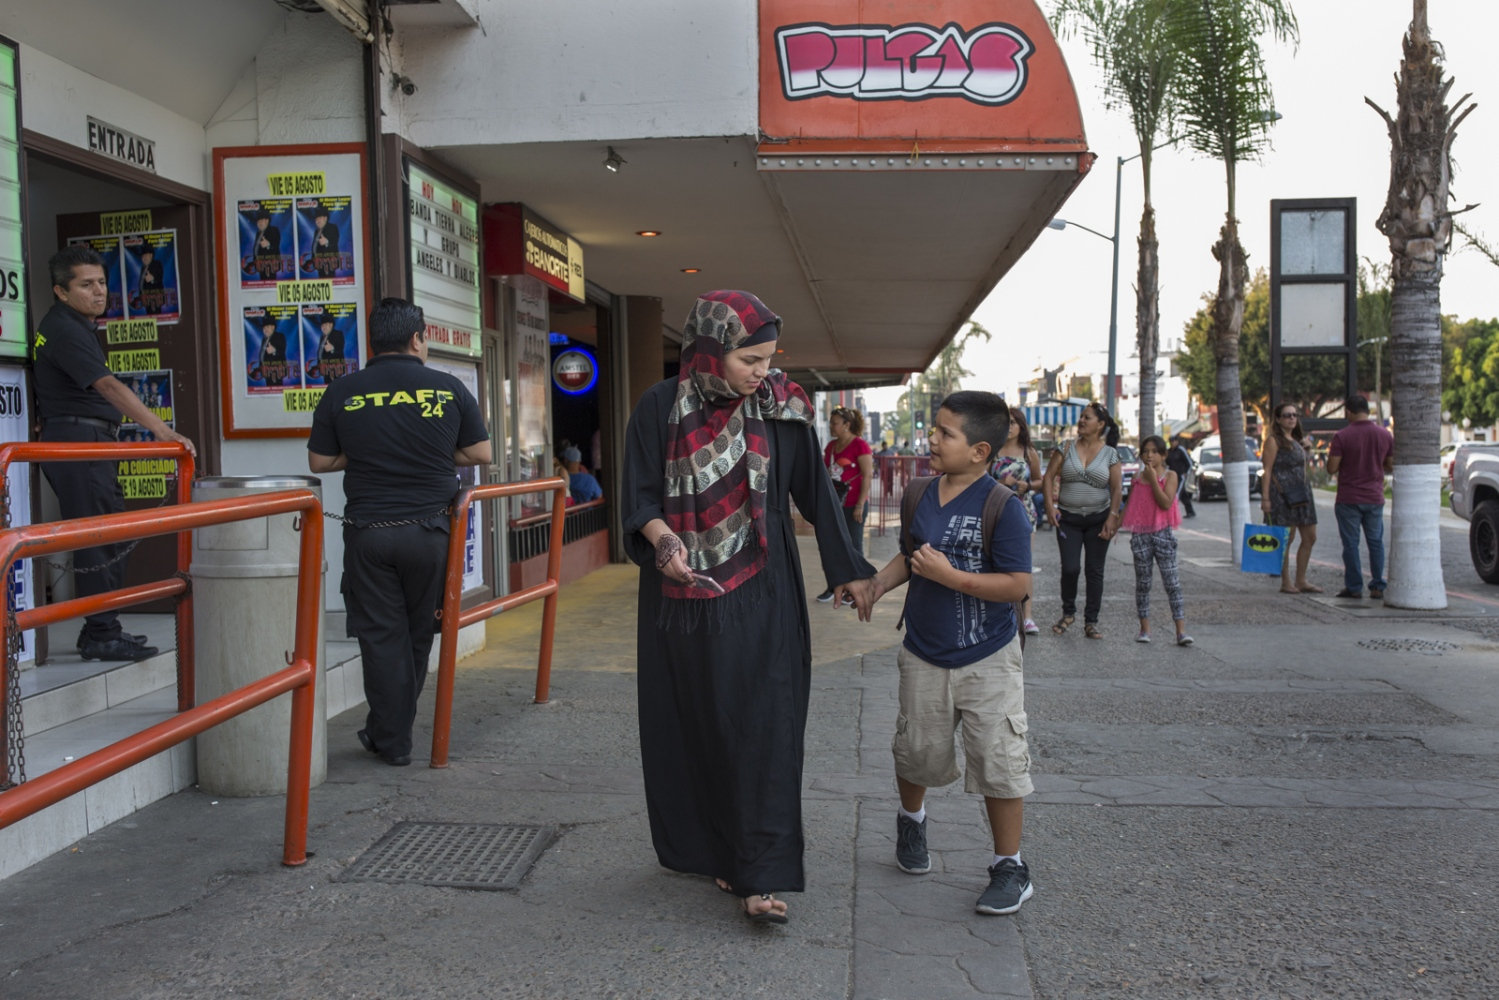 Keridma Loaeza and her son Ivan walk down the Revolution Street in downtown Tijuana, cluttered with bars, restaurants and clubs.